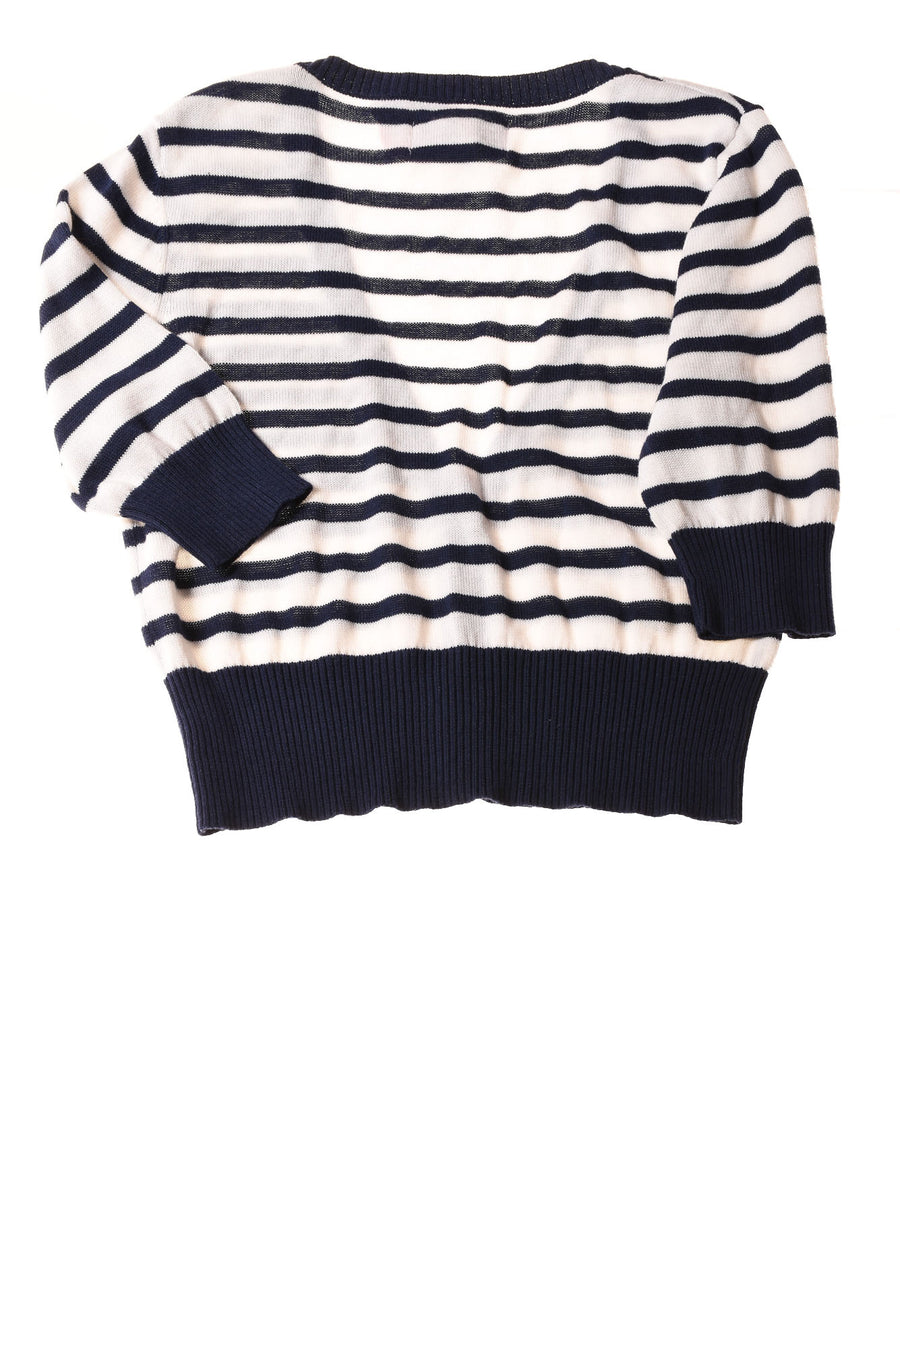 NEW So Girl's Sweater  Large White & Navy / Striped